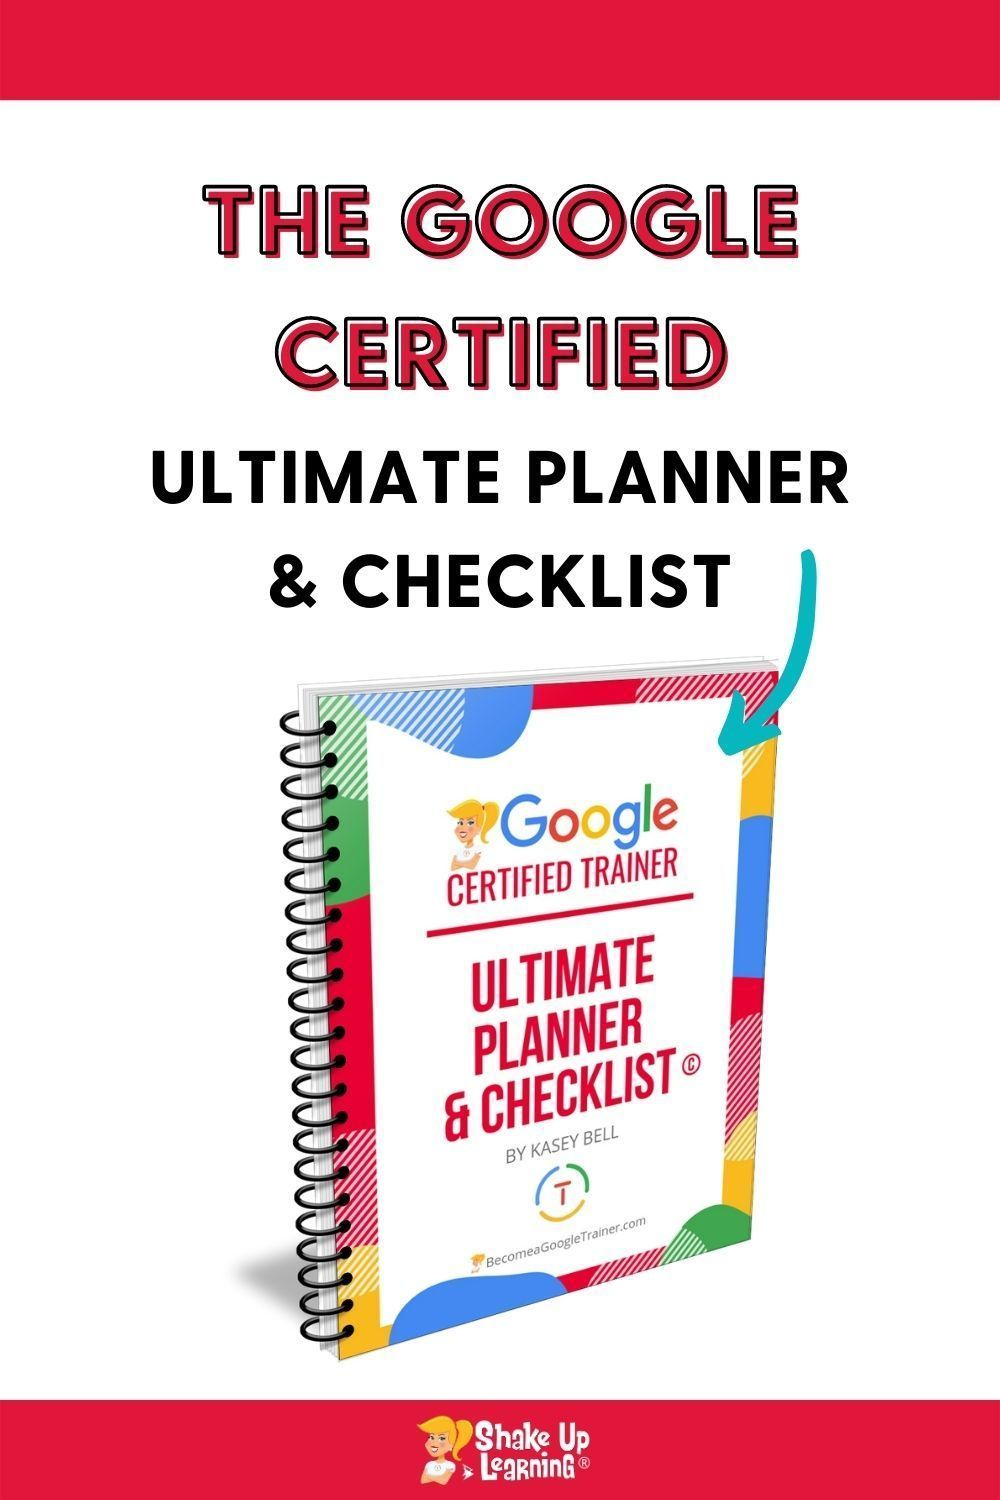 Google Certified Trainer Planner Teacher Help Free Teaching Resources Educational Technology